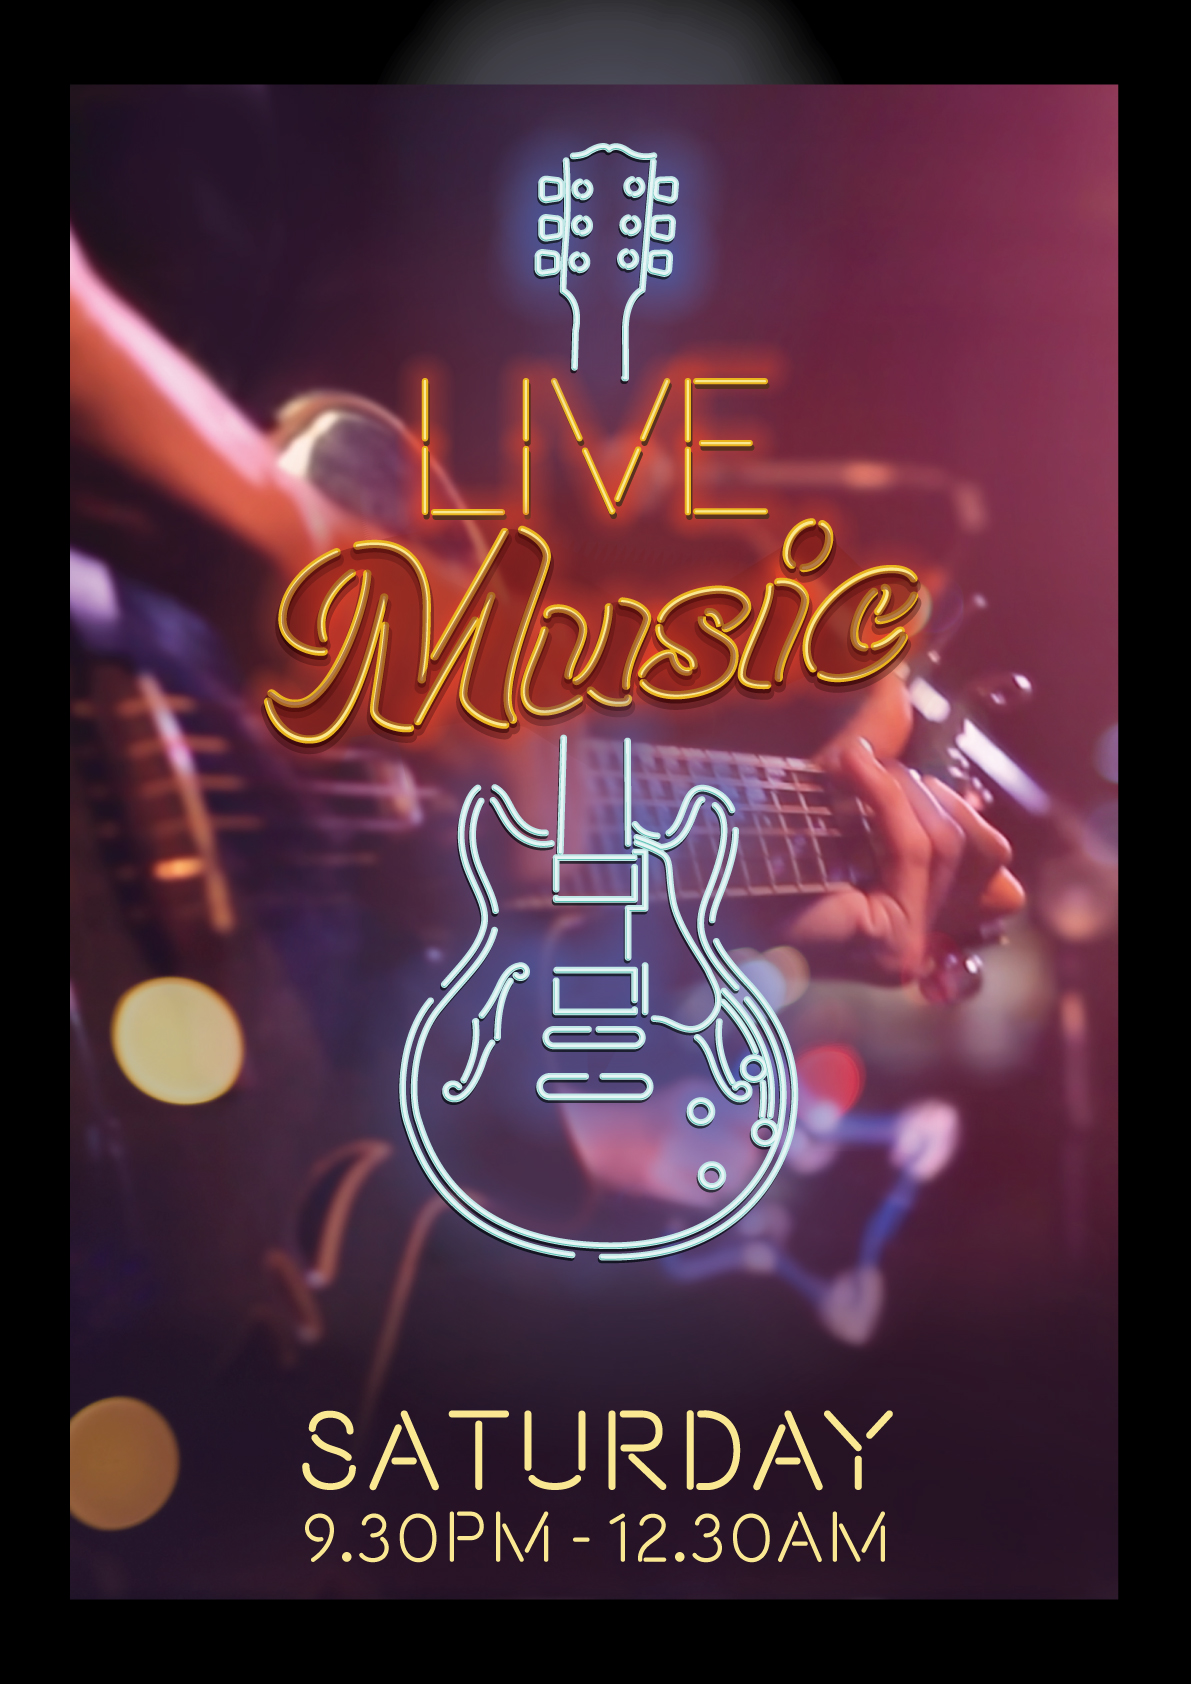 SATURDAYS LIVE MUSIC